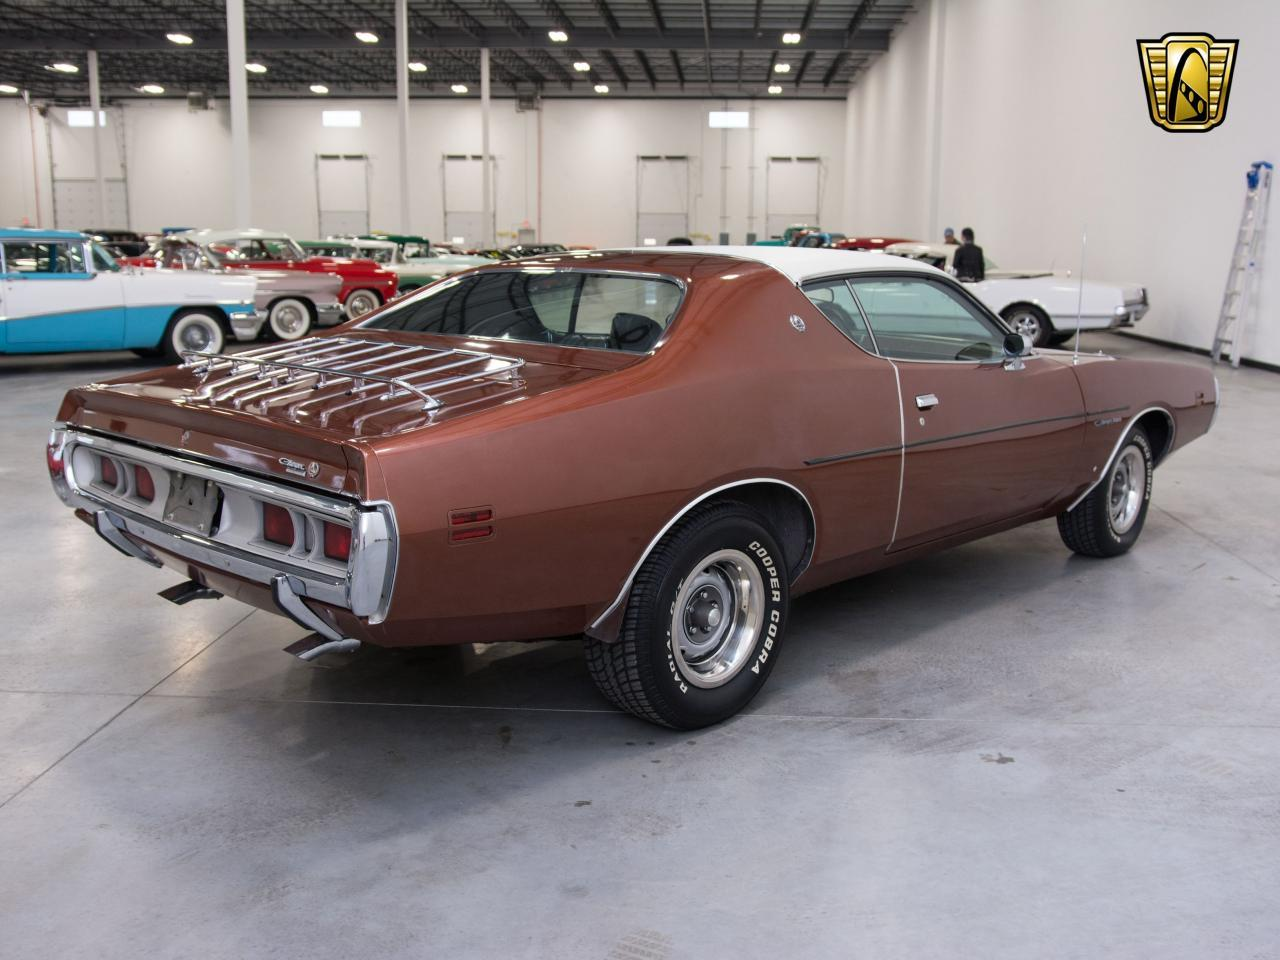 Large Picture of Classic '71 Dodge Charger located in Kenosha Wisconsin Offered by Gateway Classic Cars - Milwaukee - KEDX